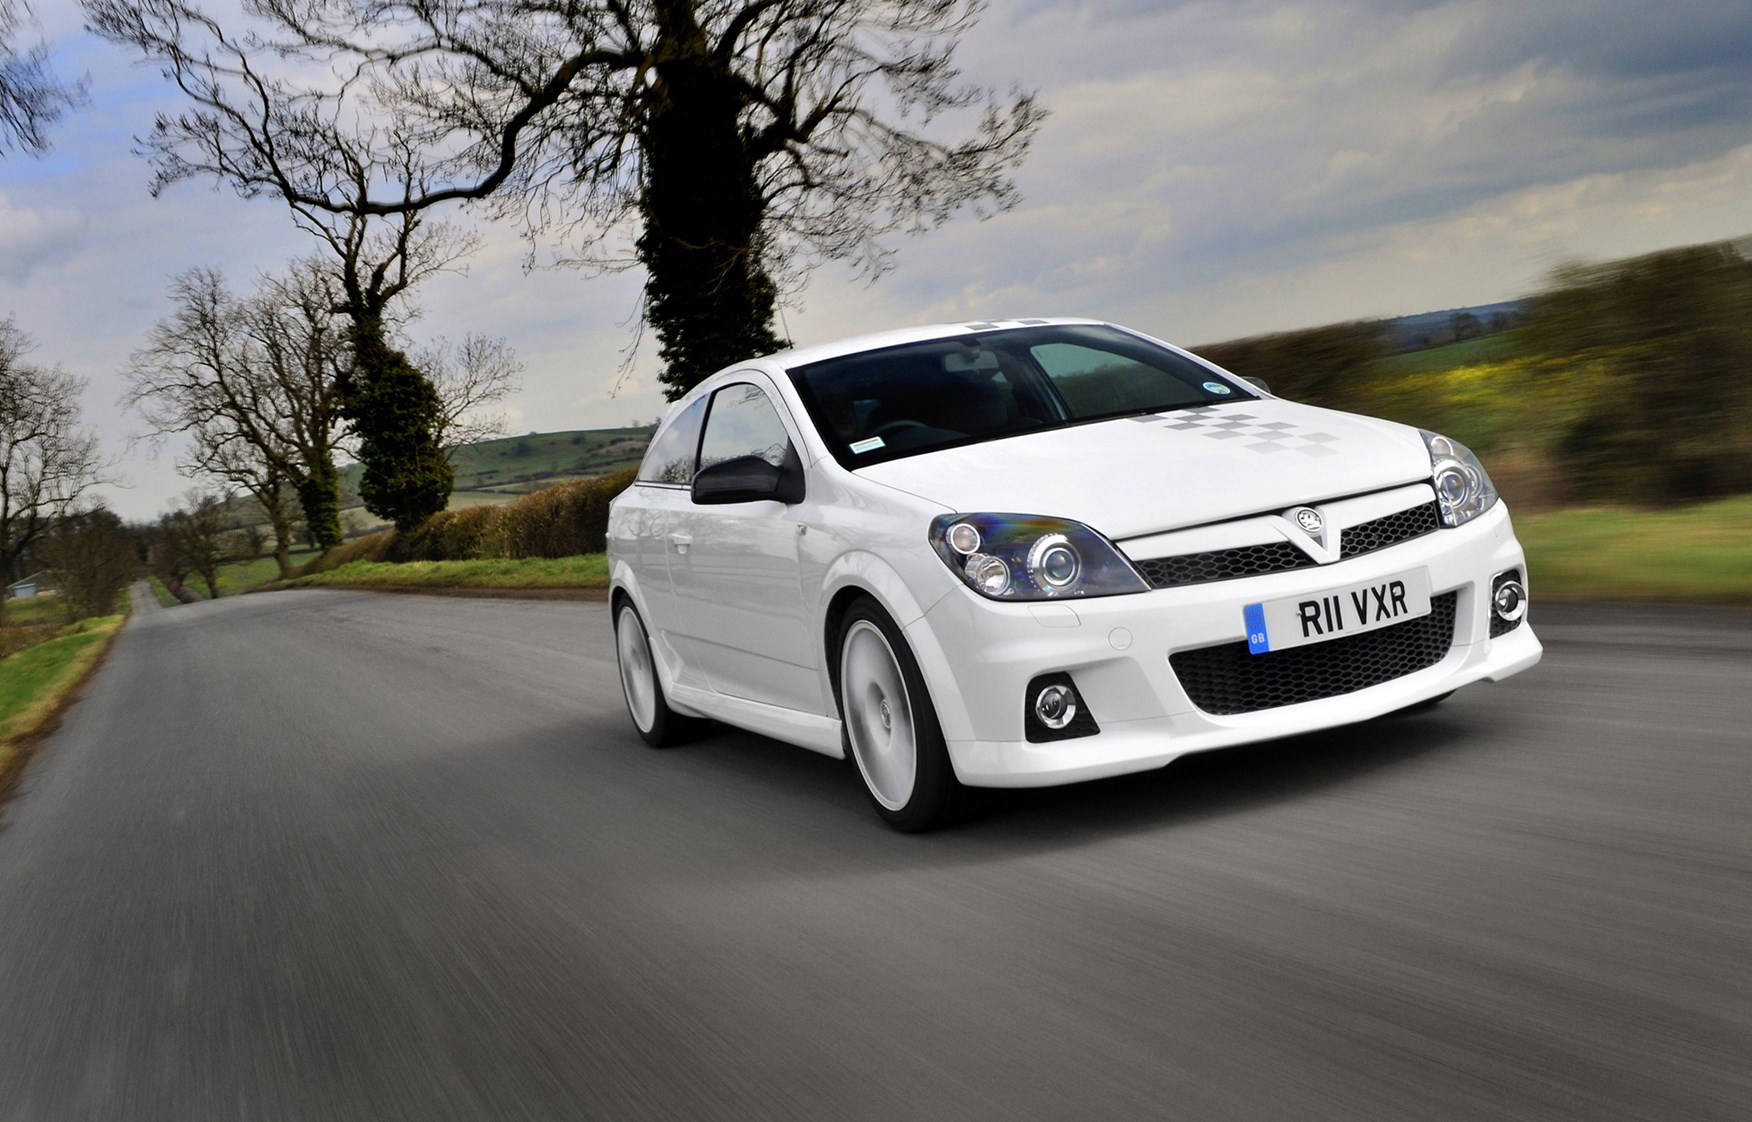 The fifth generation Astra was a massive leap forward for the model, and the VXR variant proved suitably potent